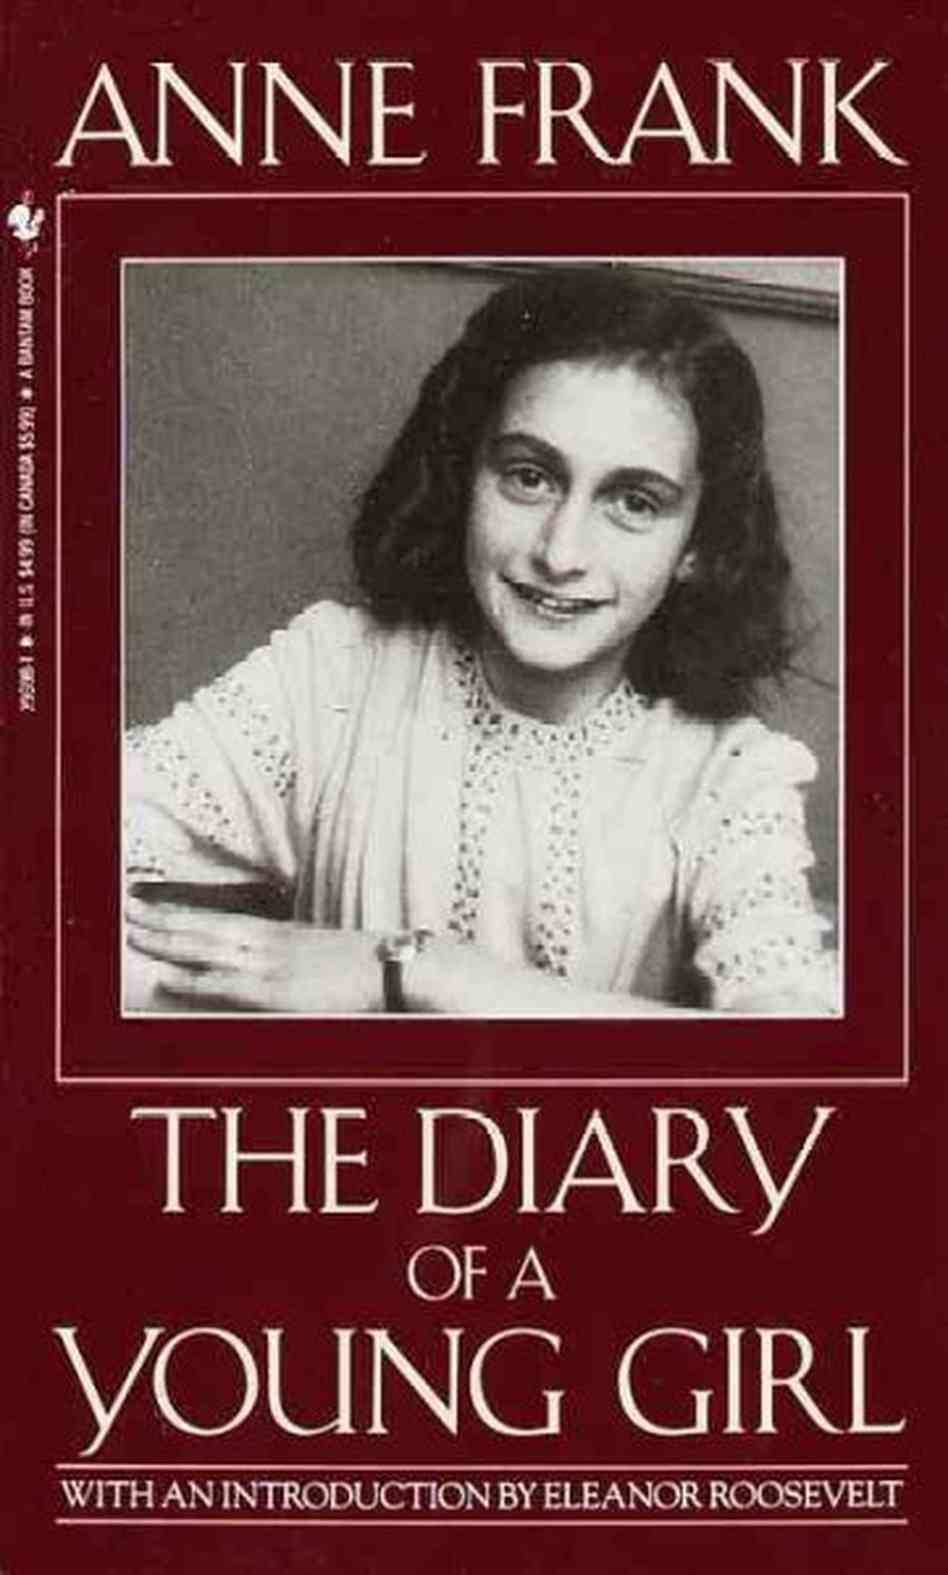 El Diario de Ana Frank, by Anne Frank (donated by Starfish supporter Karen  Rowley)